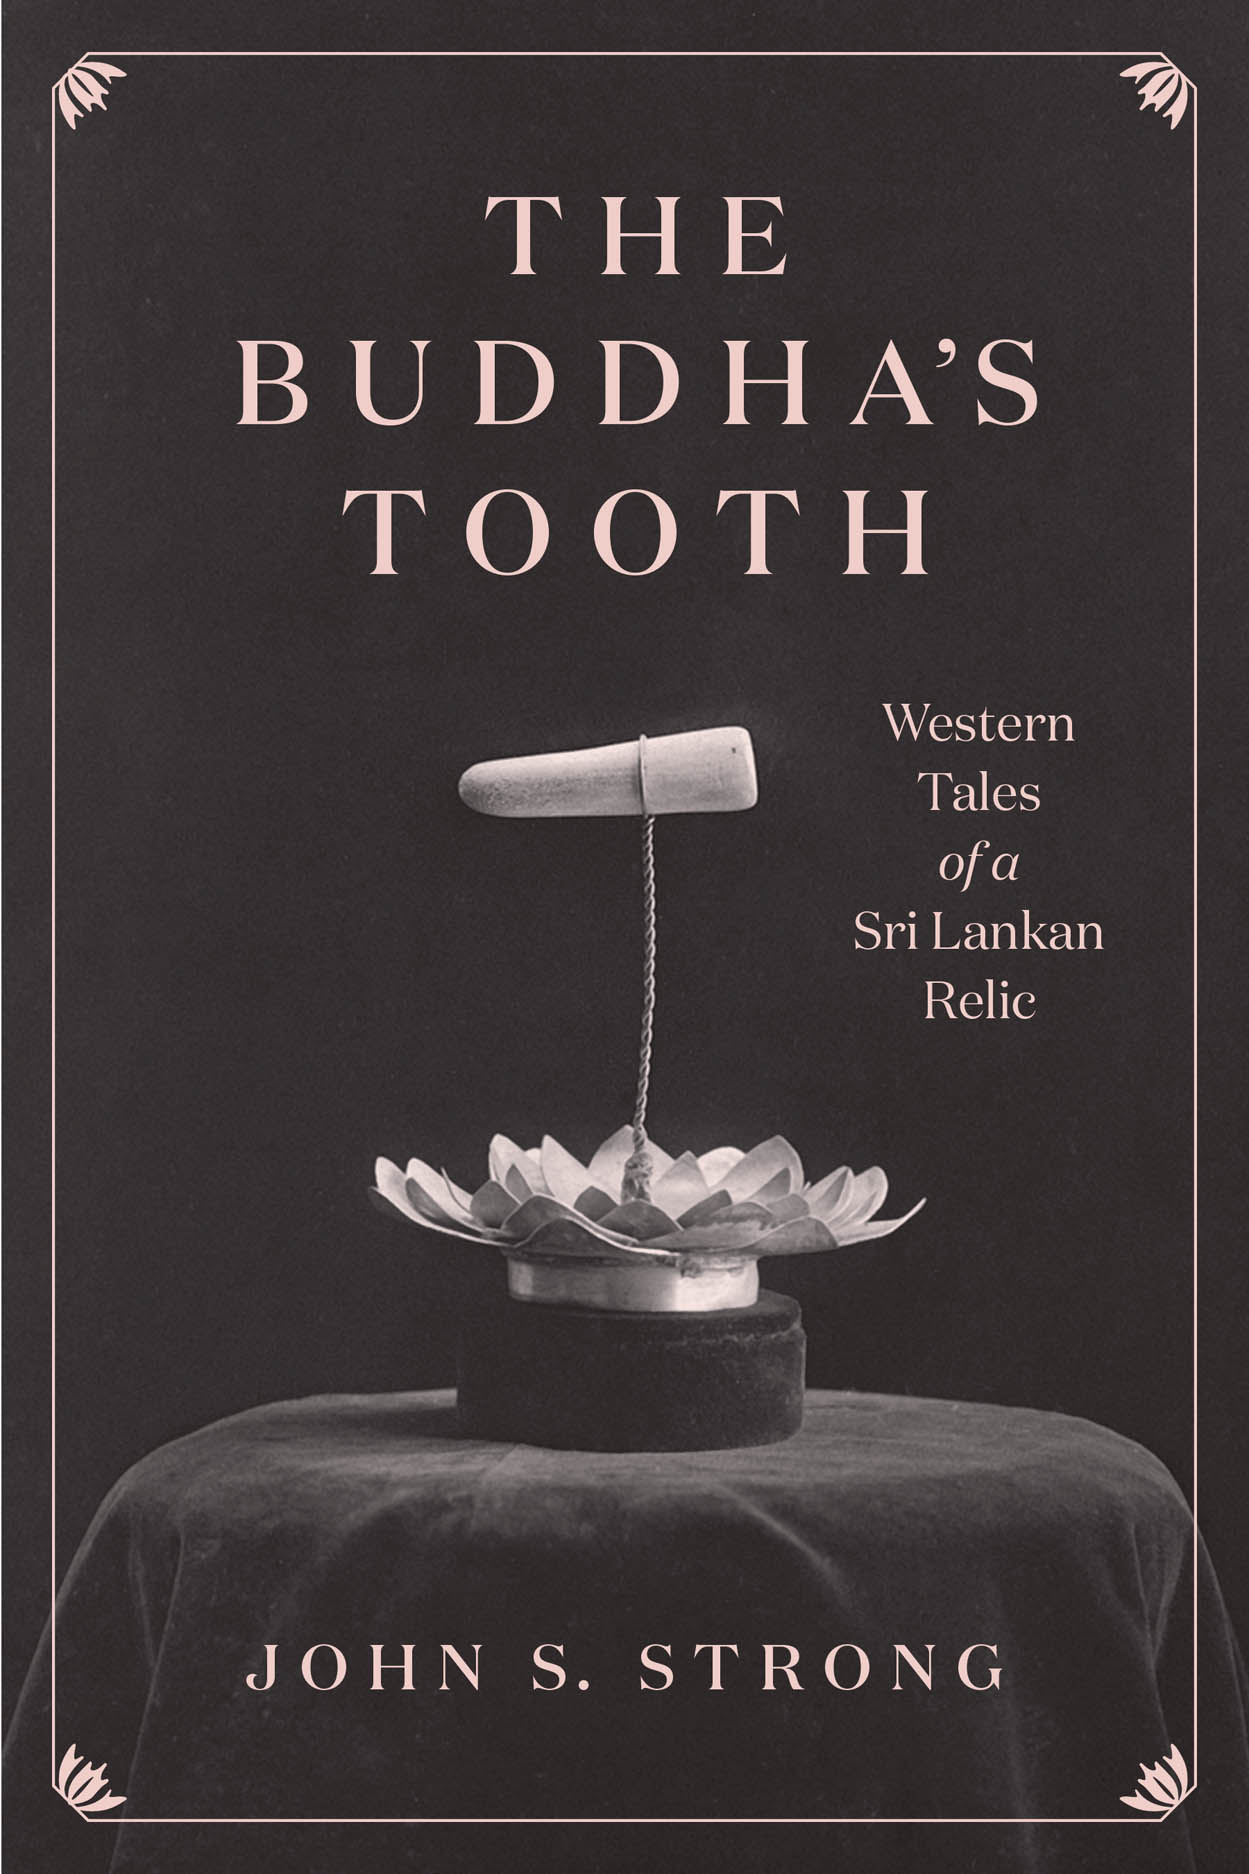 The Buddha's Tooth